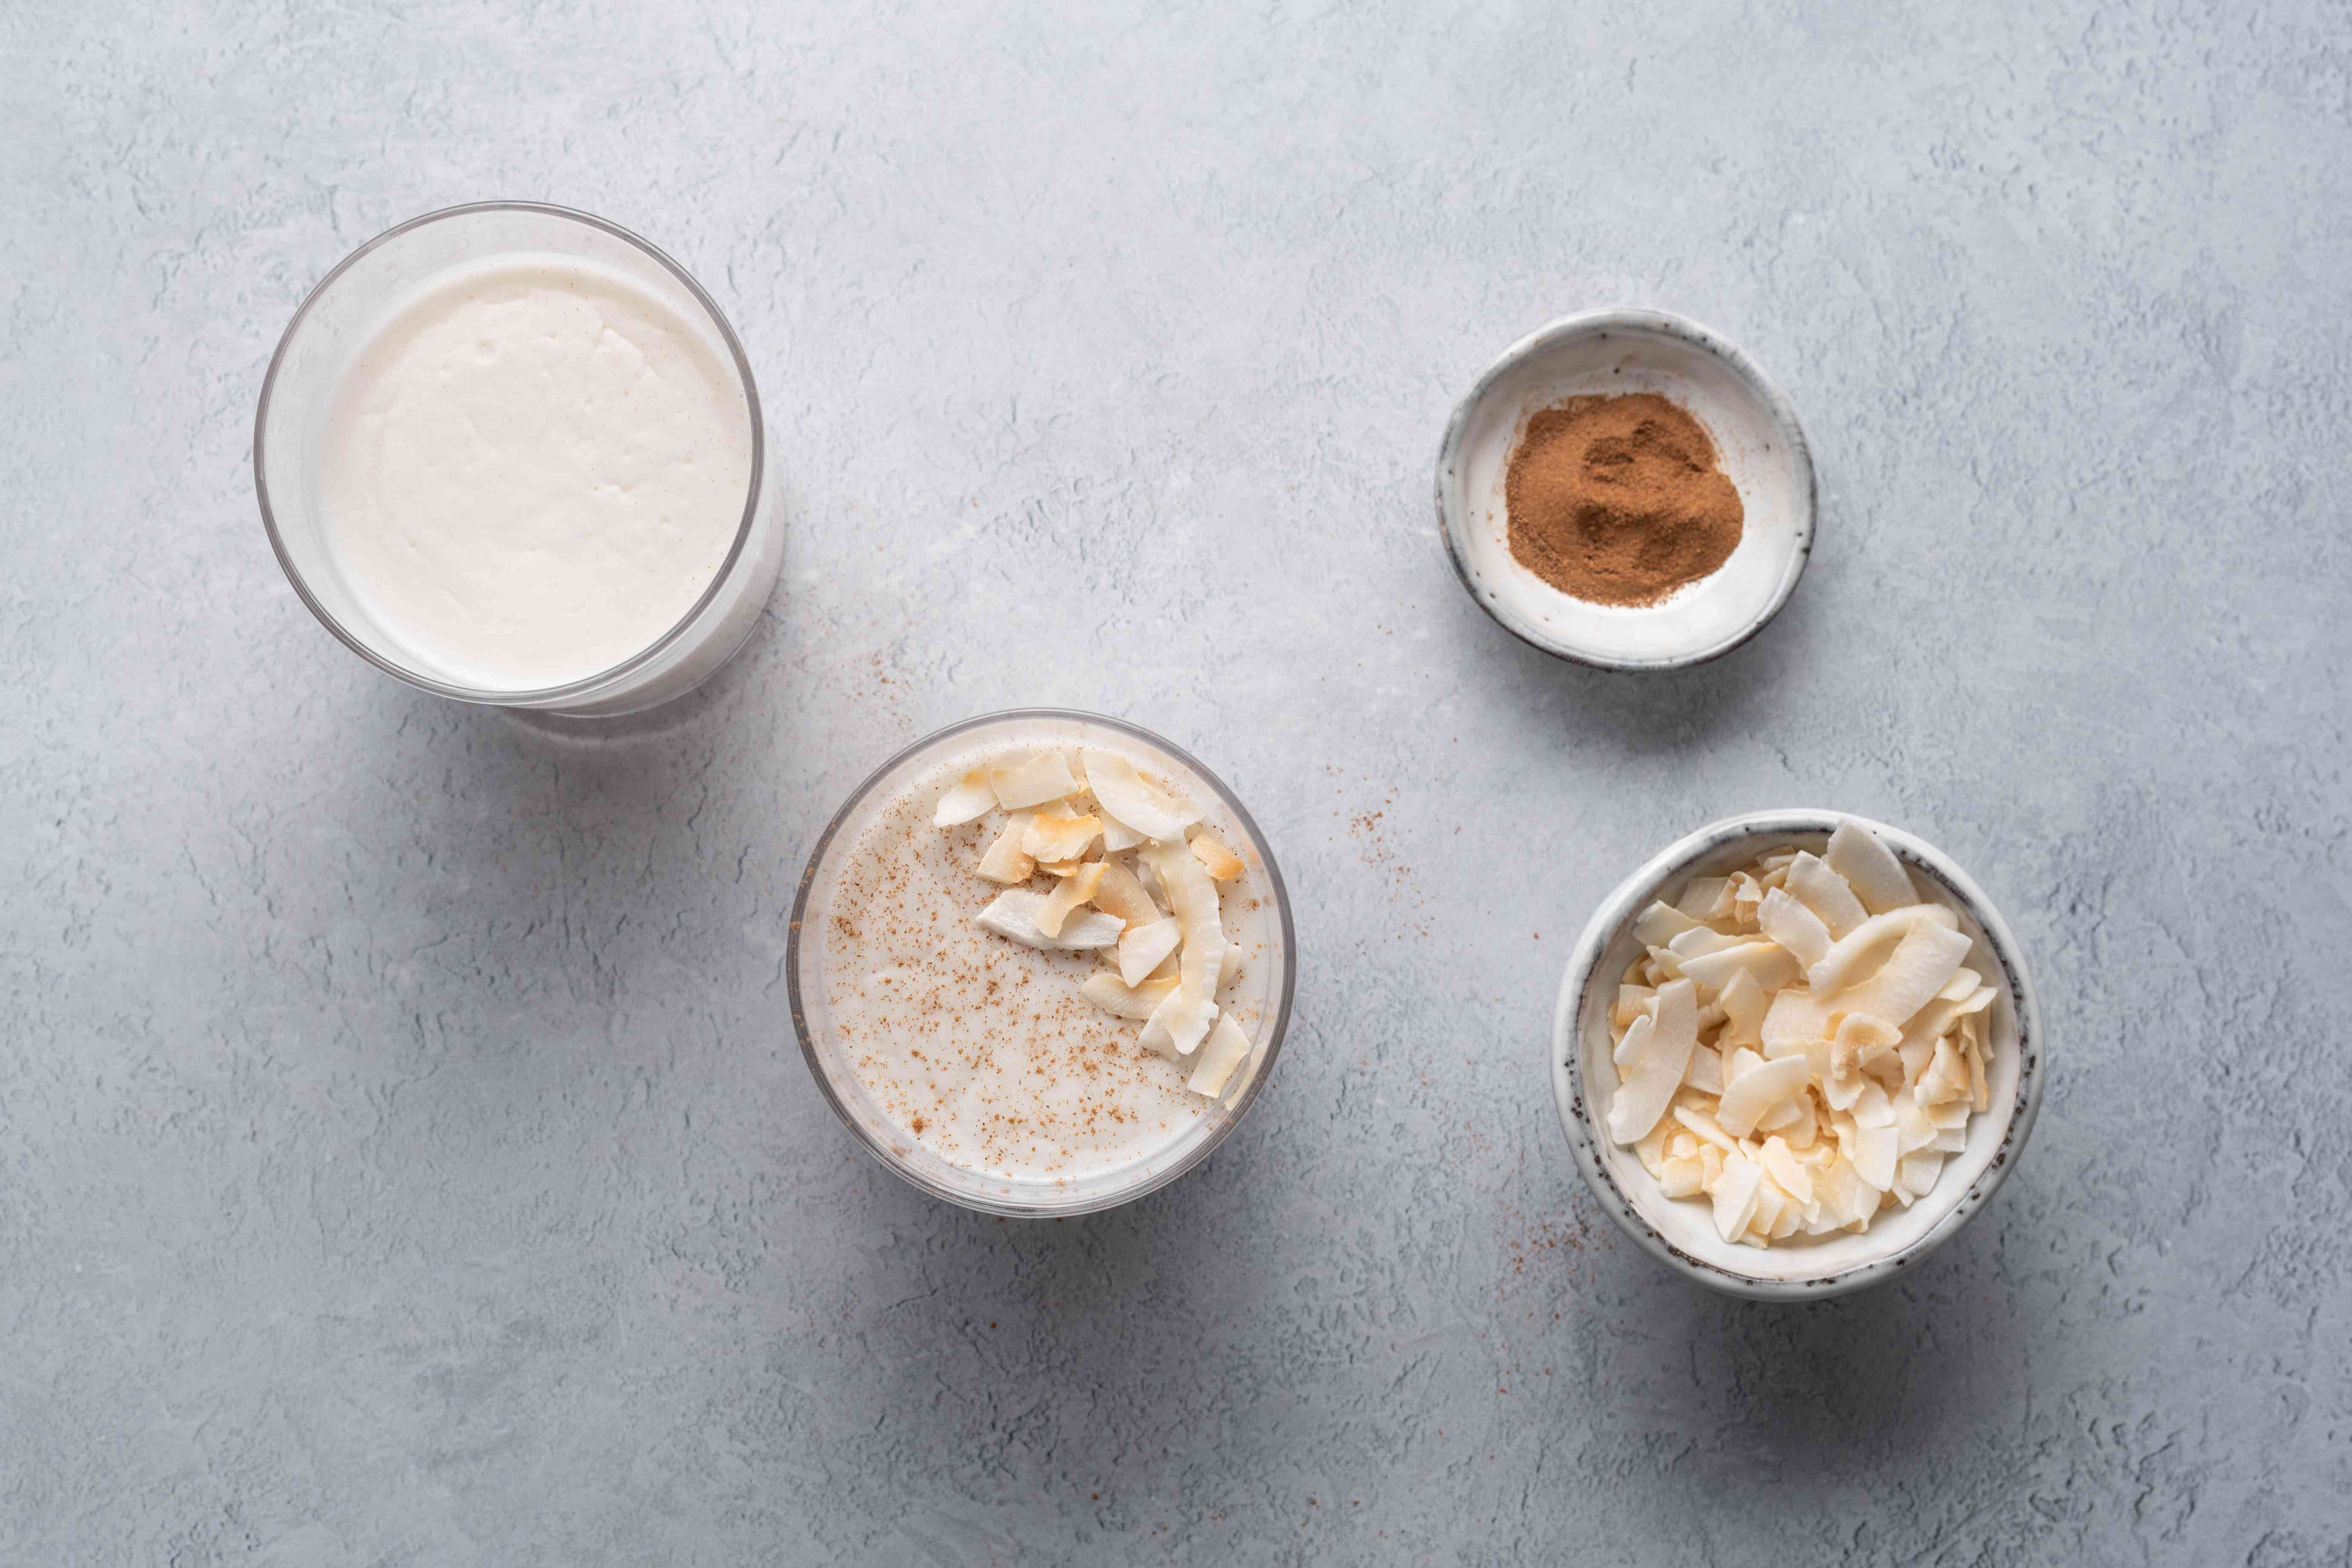 Cups of coconut pudding topped with toasted coconut and cinnamon